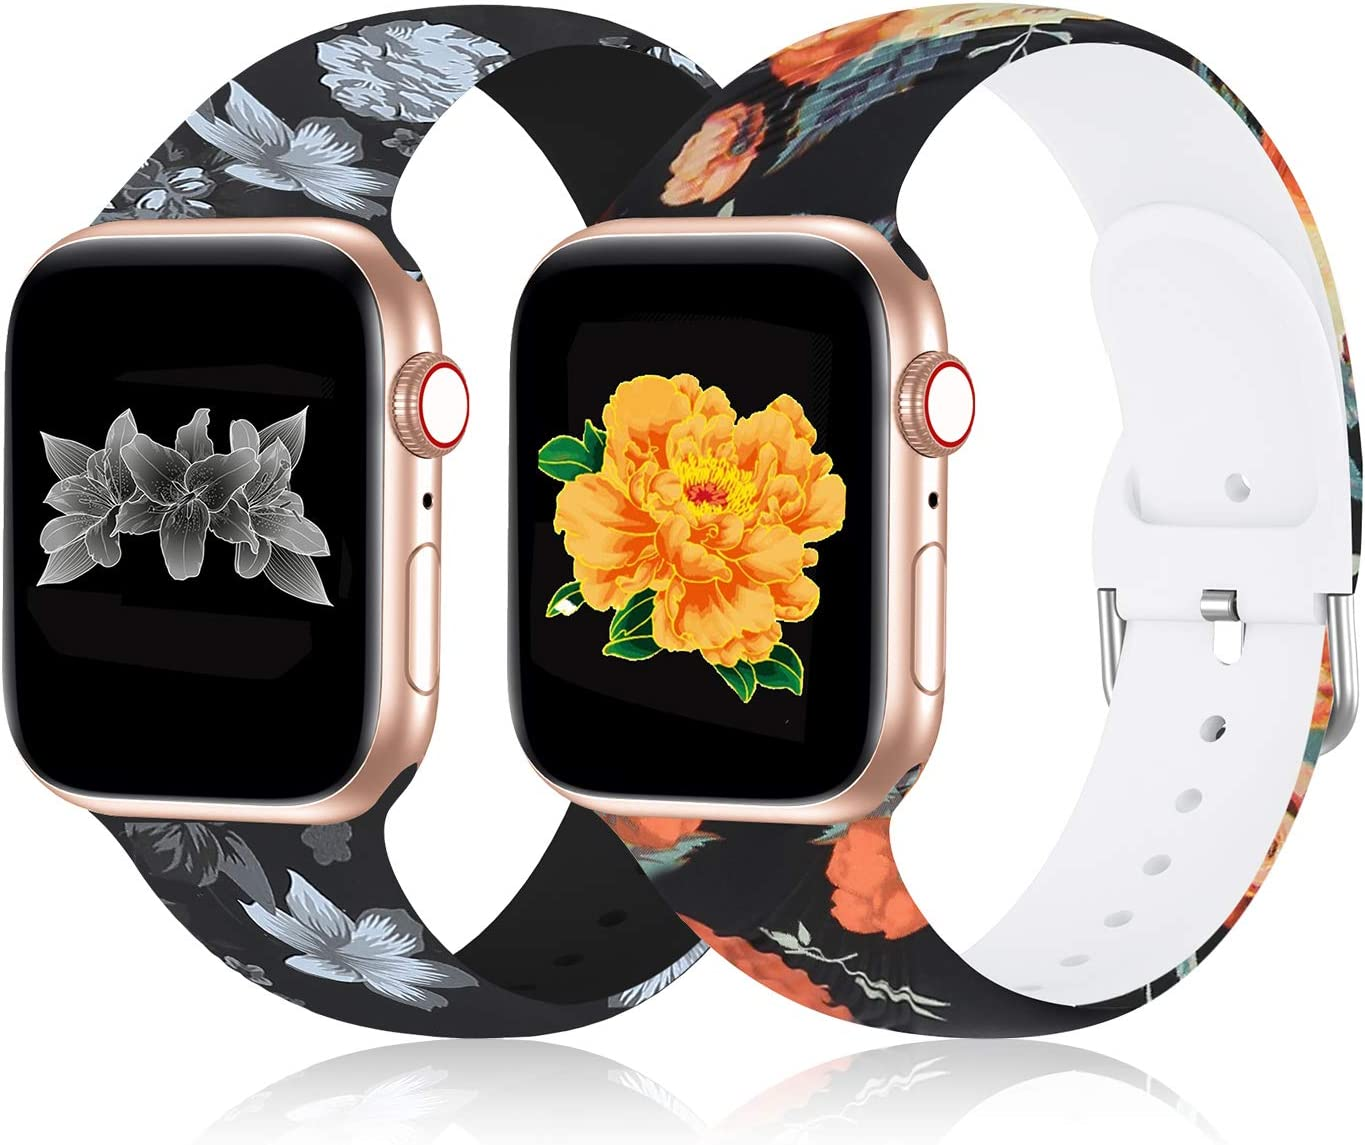 2 Pack Sport Band Compatible with Apple Watch Bands 40mm 38mm, Silicone Sports Band Pattern Printed Women Replacement Floral Fadeless Watch Strap Compatible for iWatch Band Series 5/4/3/2/1